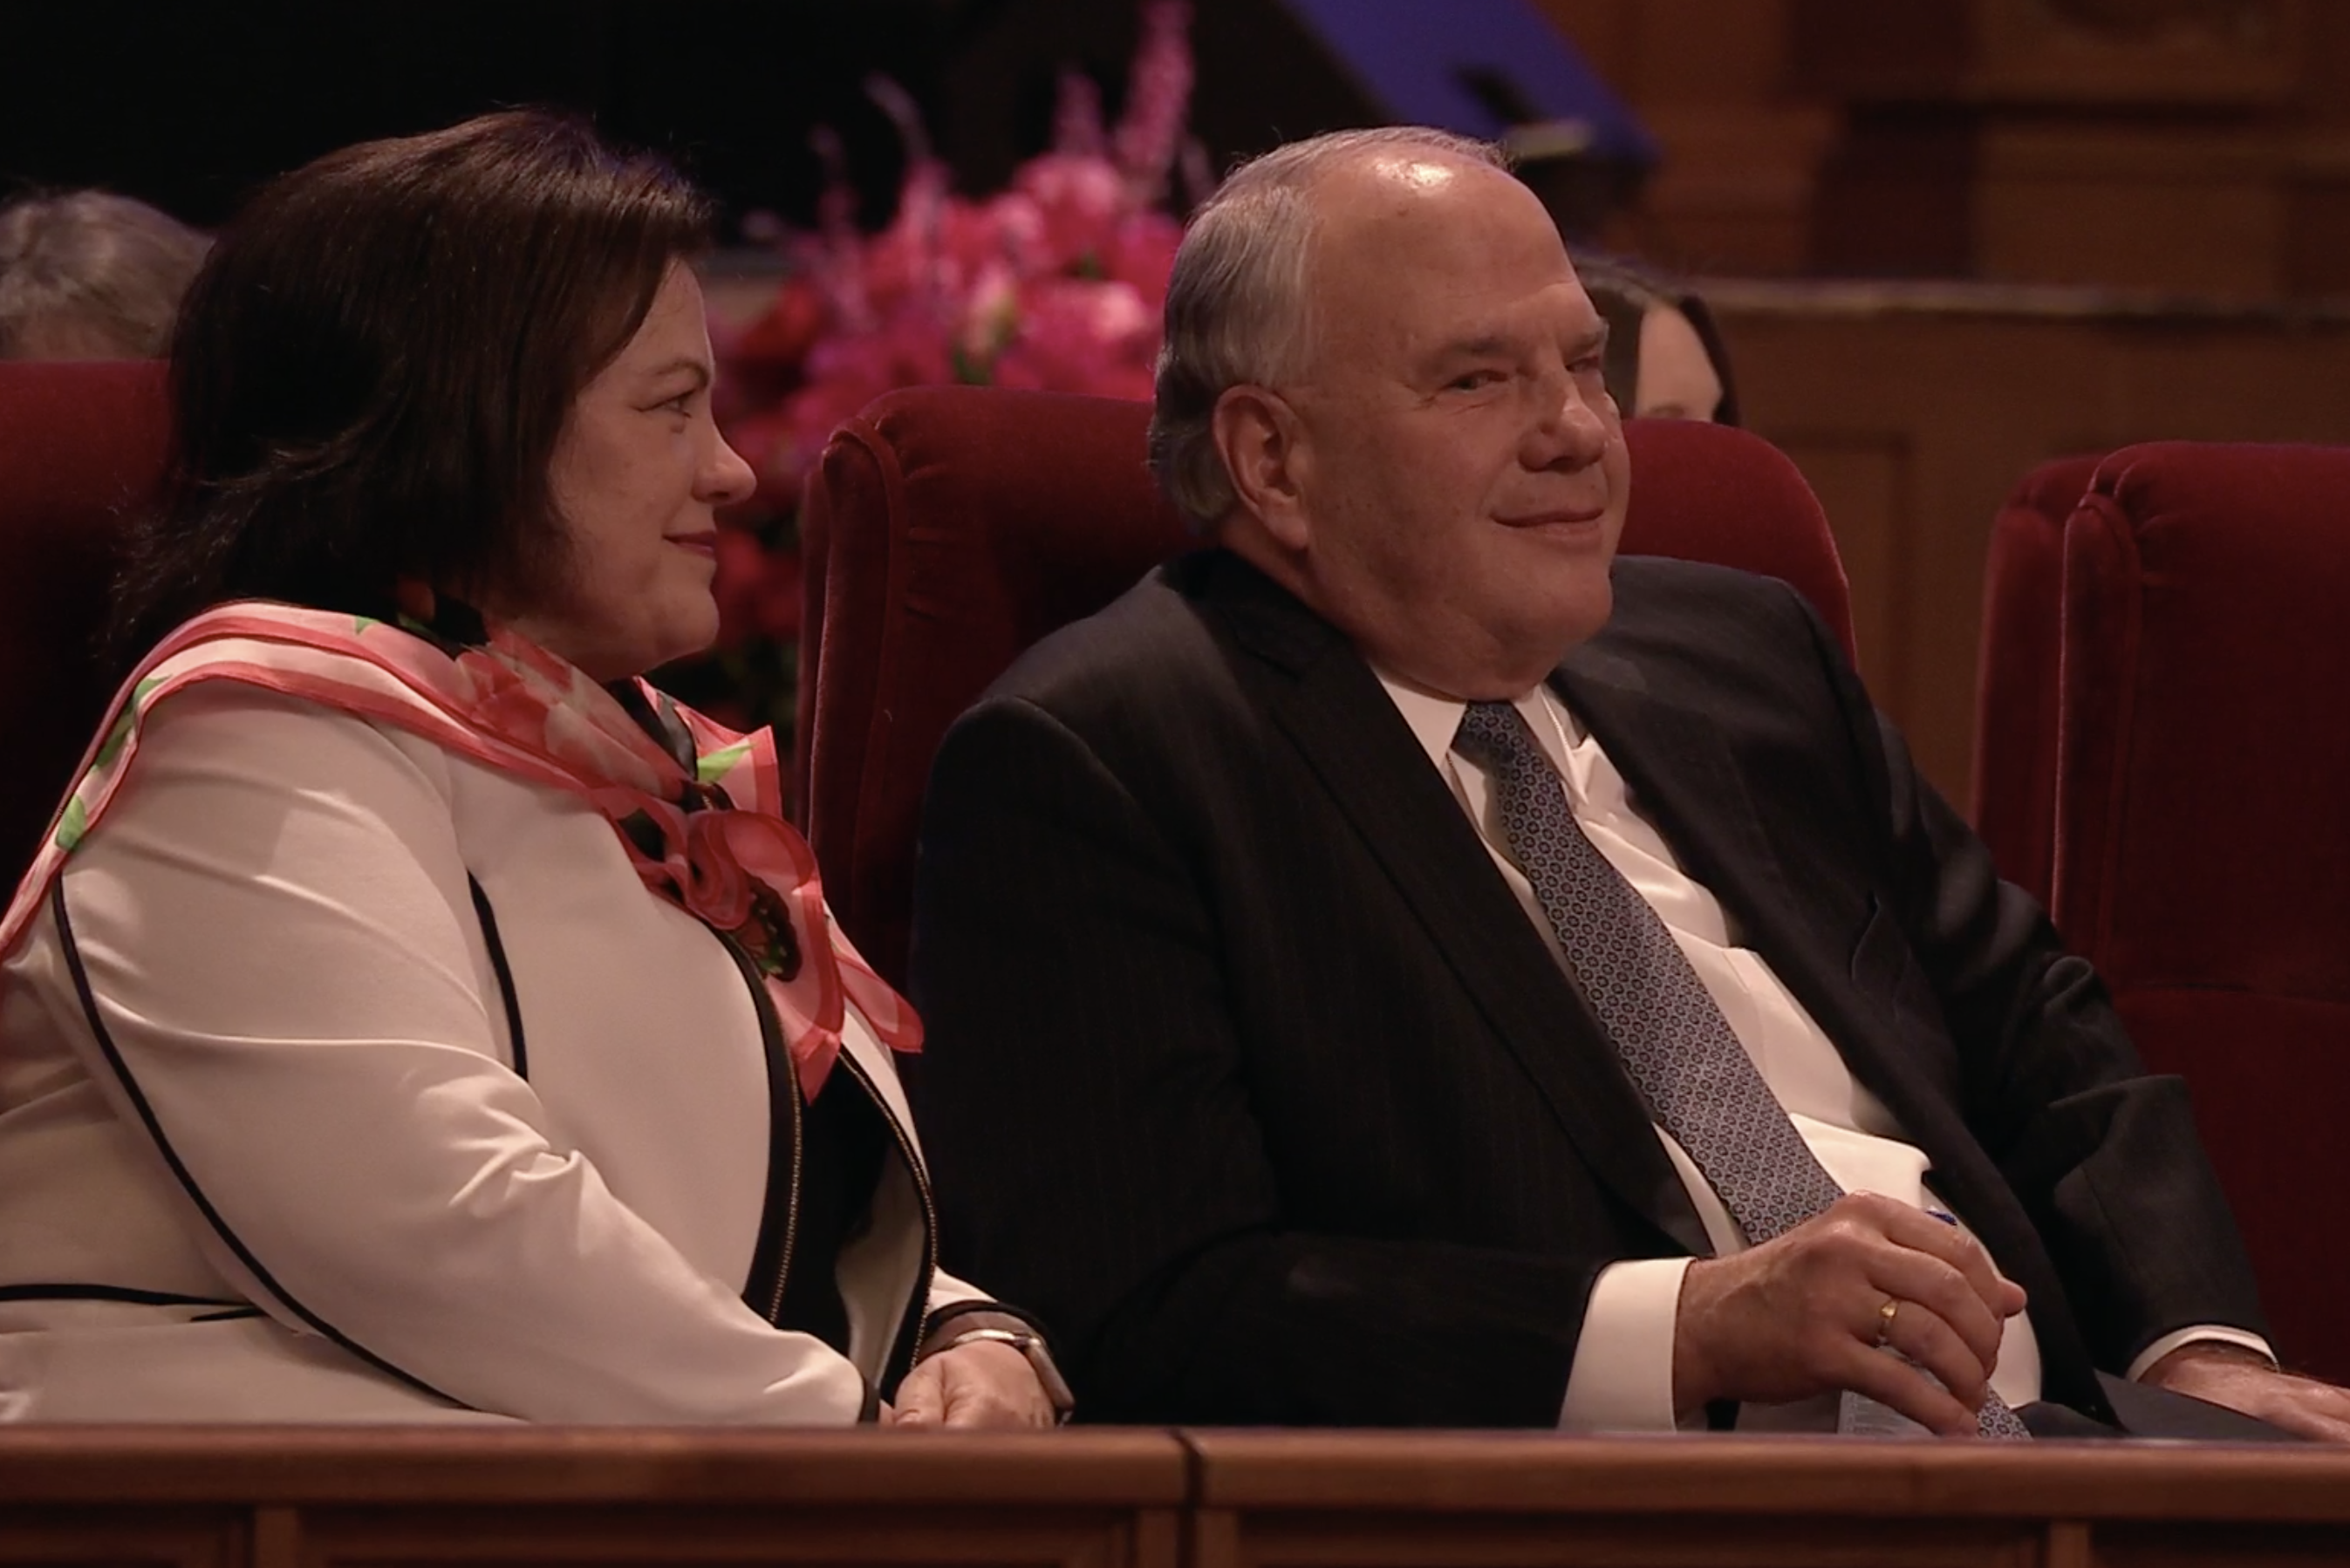 """Elder Ronald A. Rasband of the Quorum of the Twelve Apostles and his wife, Sister Melanie Rasband, participate in """"An Evening with a General Authority"""" devotional, which was broadcast from the Tabernacle on Temple Square on Feb. 8, 2019."""